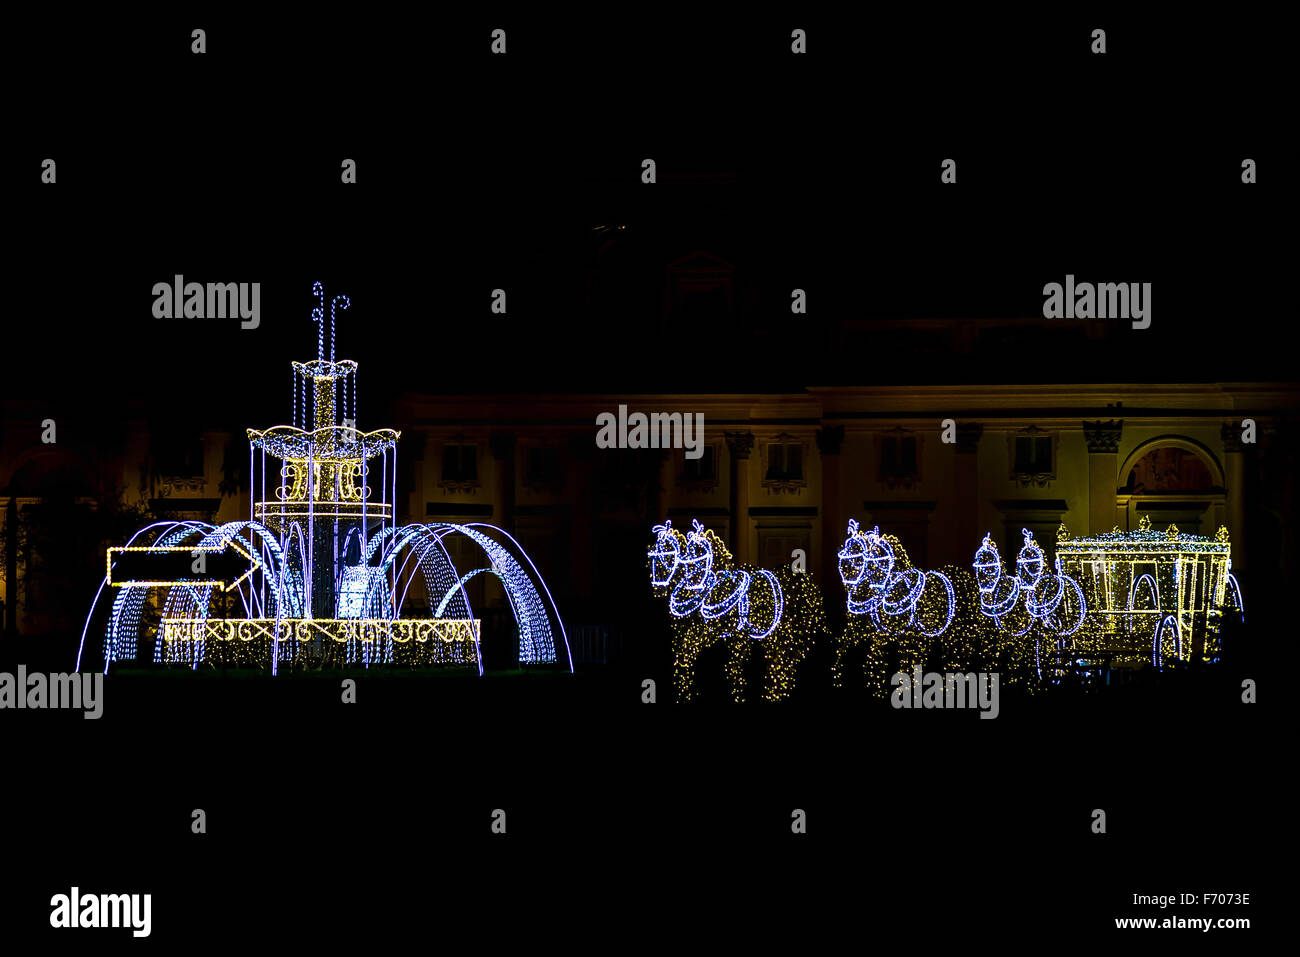 Illumination of Fountain and Horses with Carriage in Front of Building - Stock Image